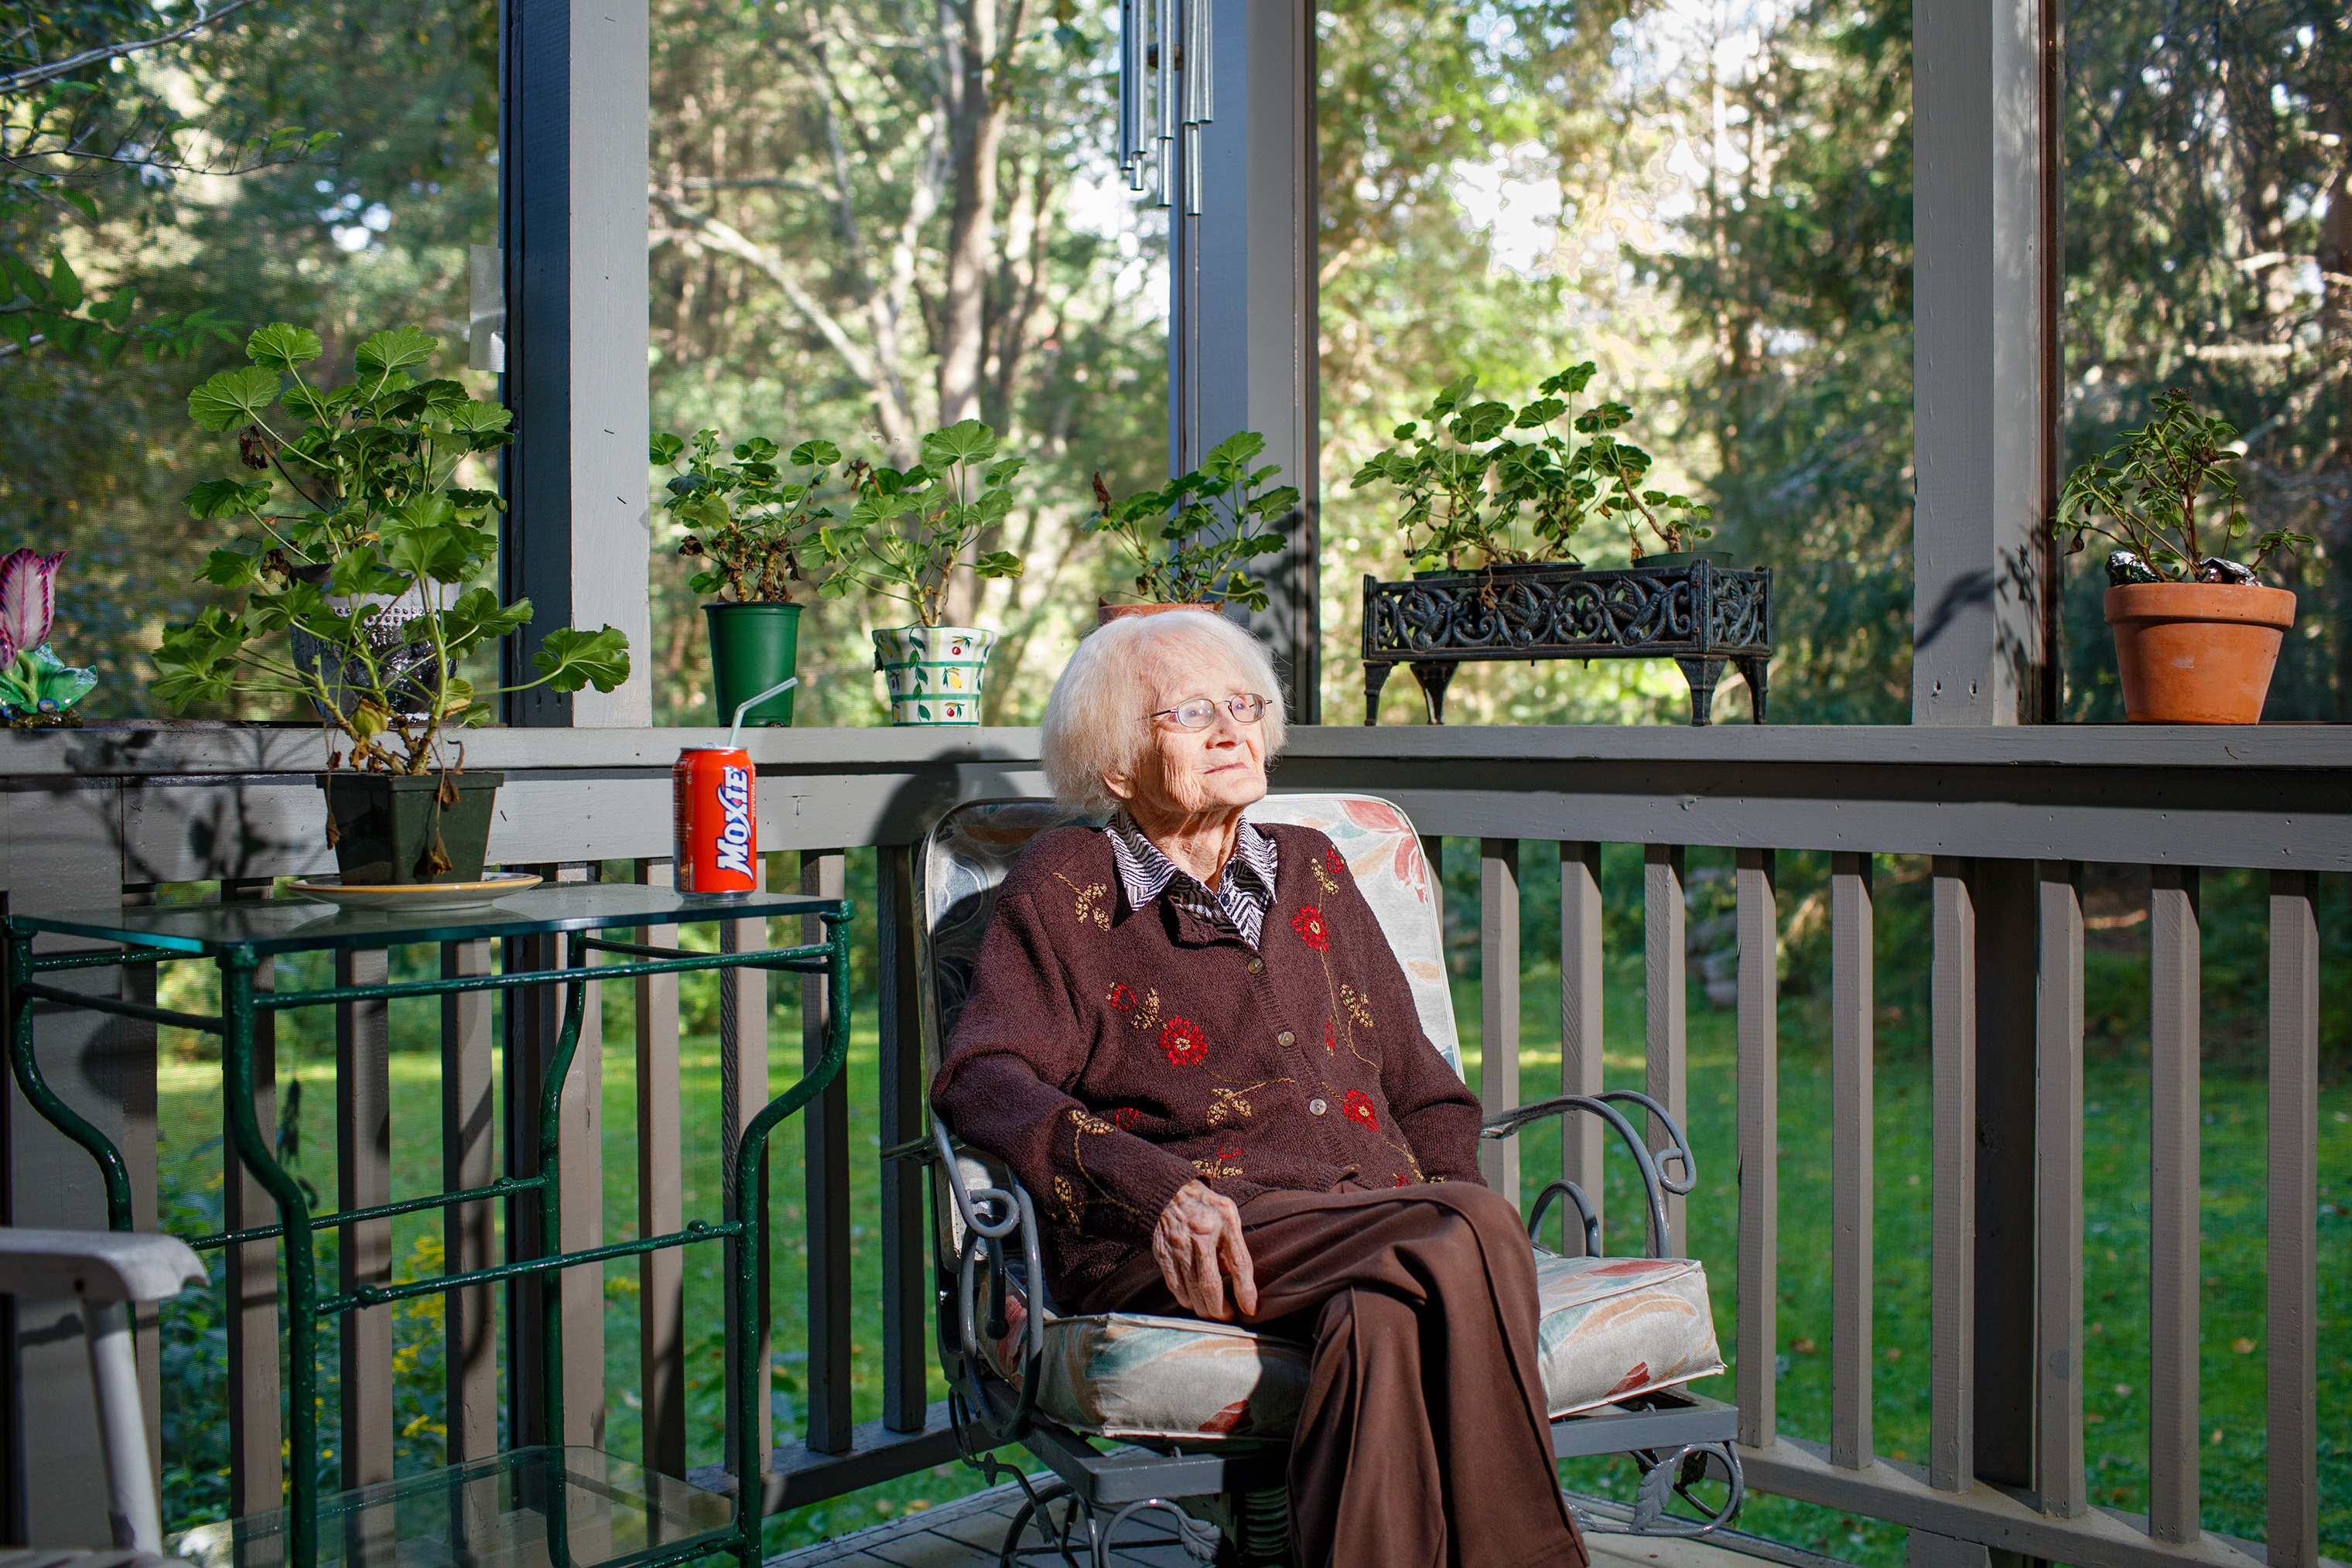 Patricia Lyons Harrington, age 105, on her porch at home in Essex, Mass.